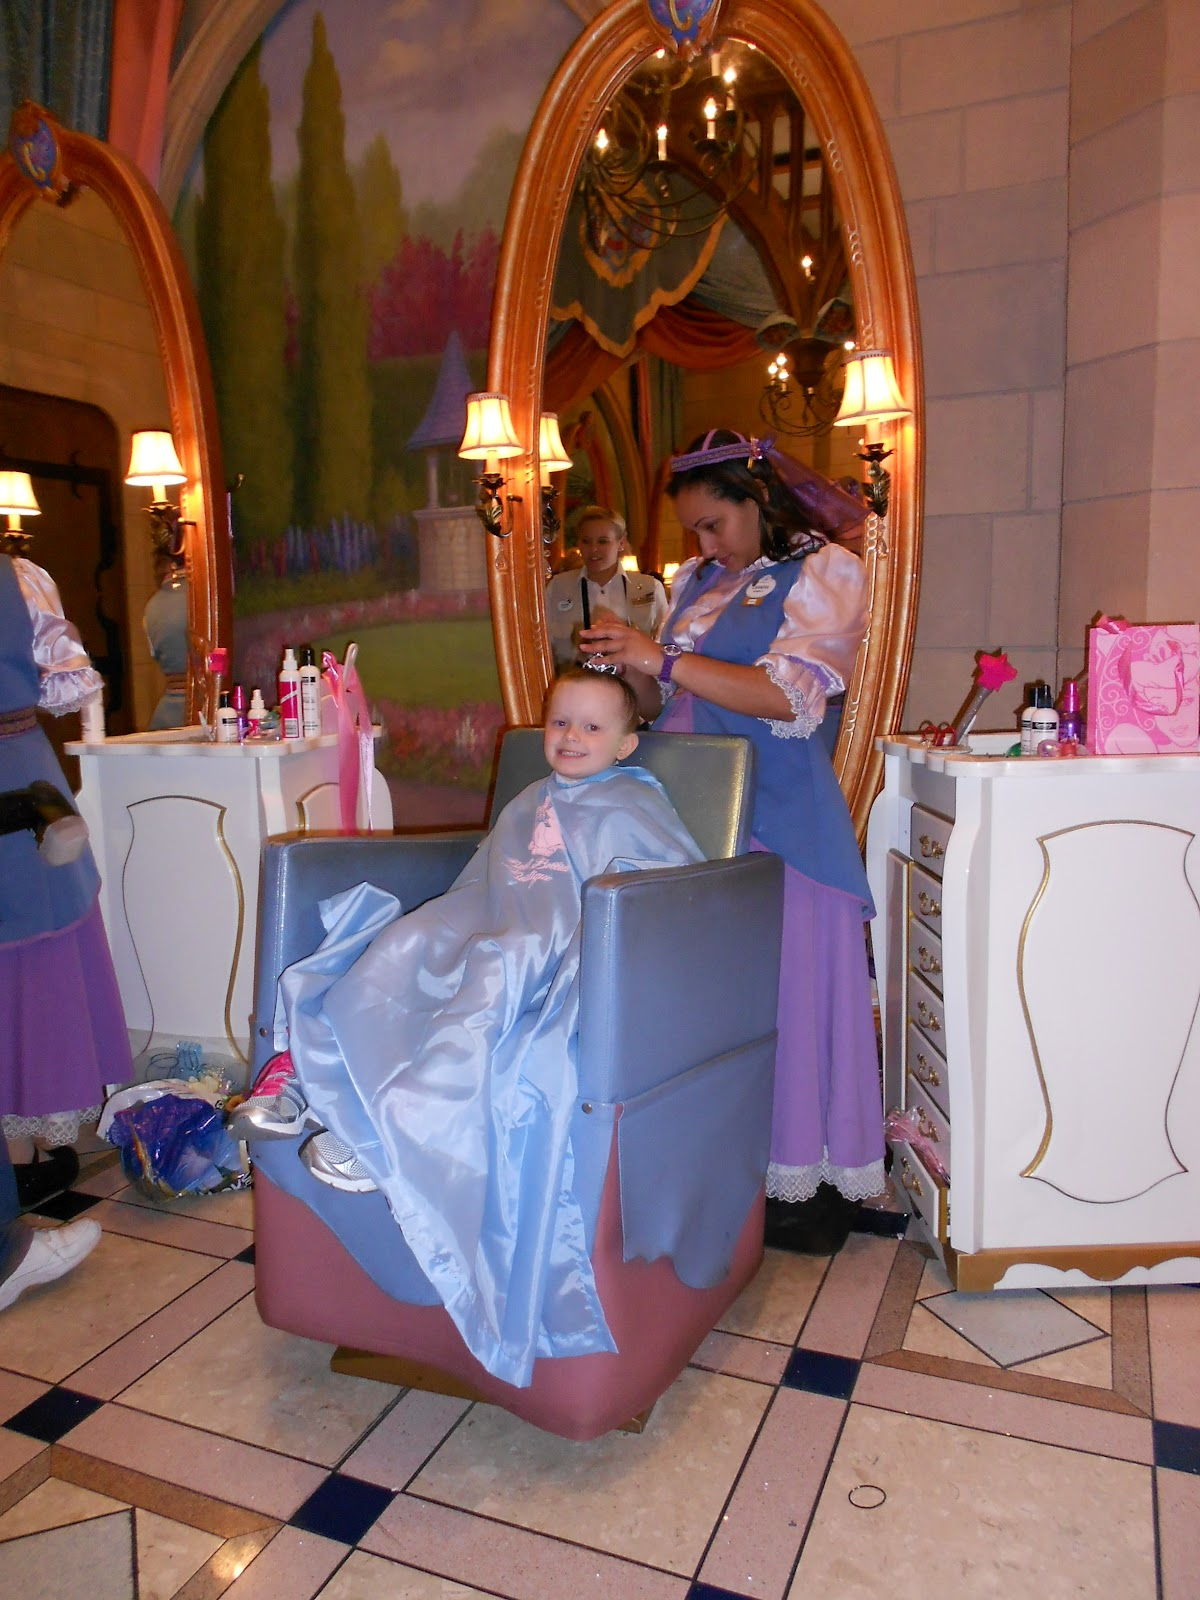 Bibbidi bobbidi boutique the castle review tips from for World boutique